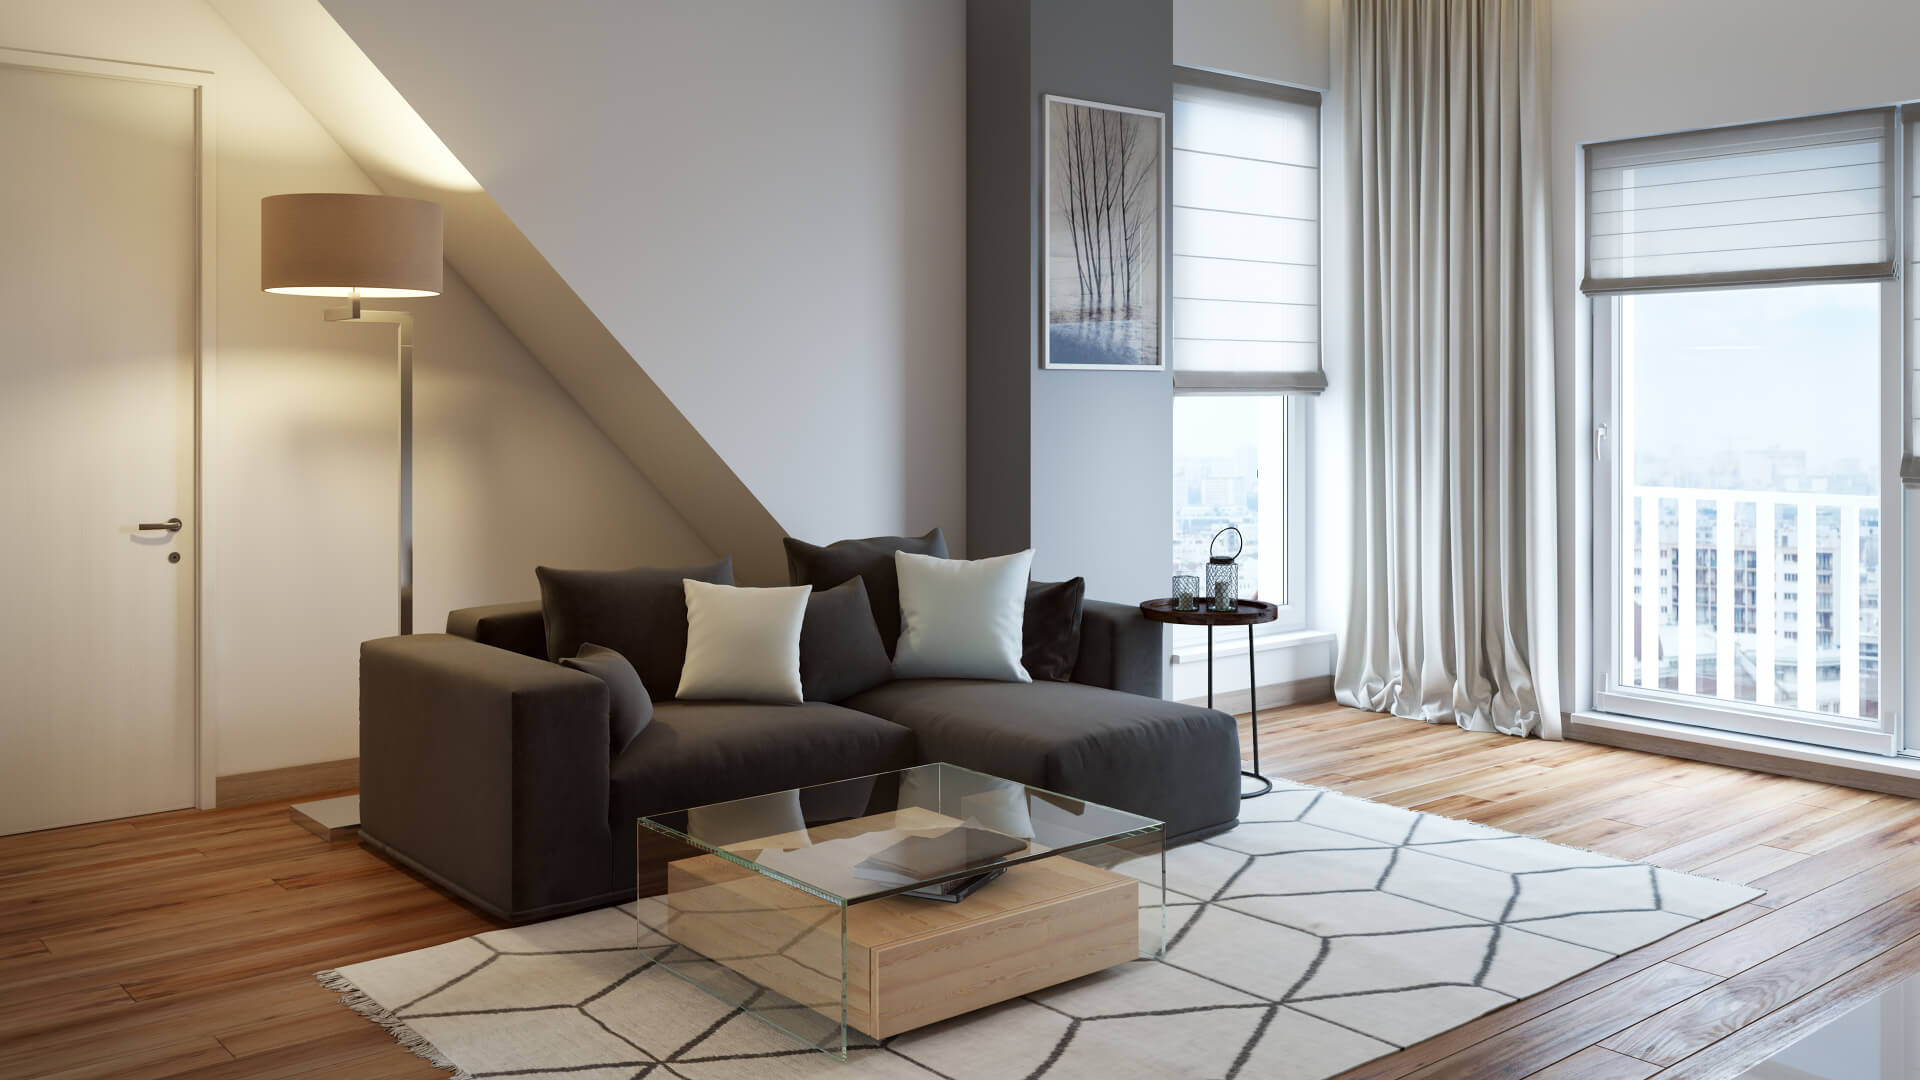 3D Visualization of a Stylish Contemporary Room